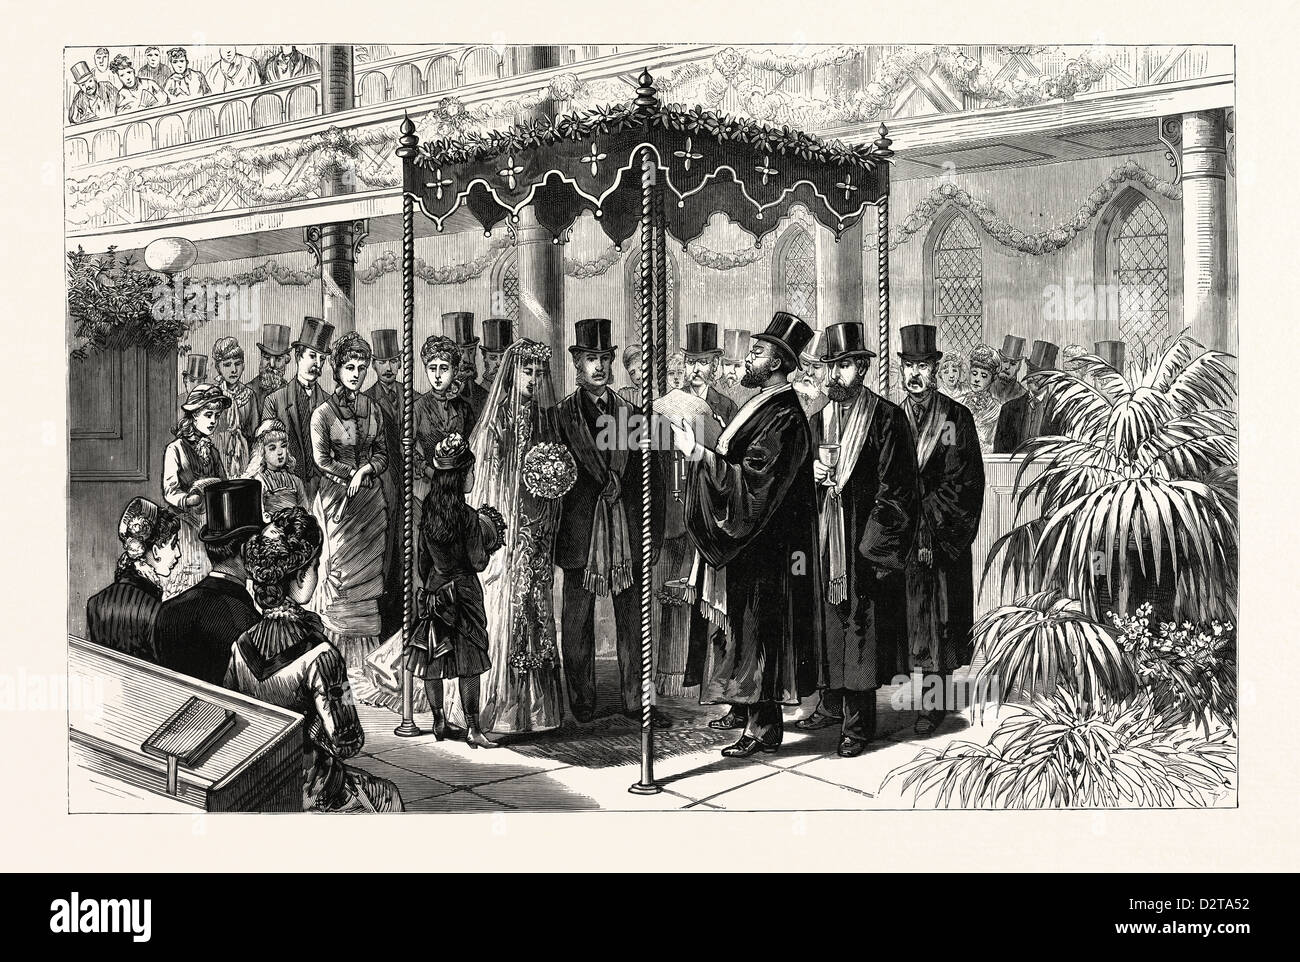 THE ROTHSCHILD-PERUGIA WEDDING IN LONDON, JANUARY 19TH, THE HEBREW CEREMONY BENEATH THE CANOPY, UK, engraving 1880 - Stock Image